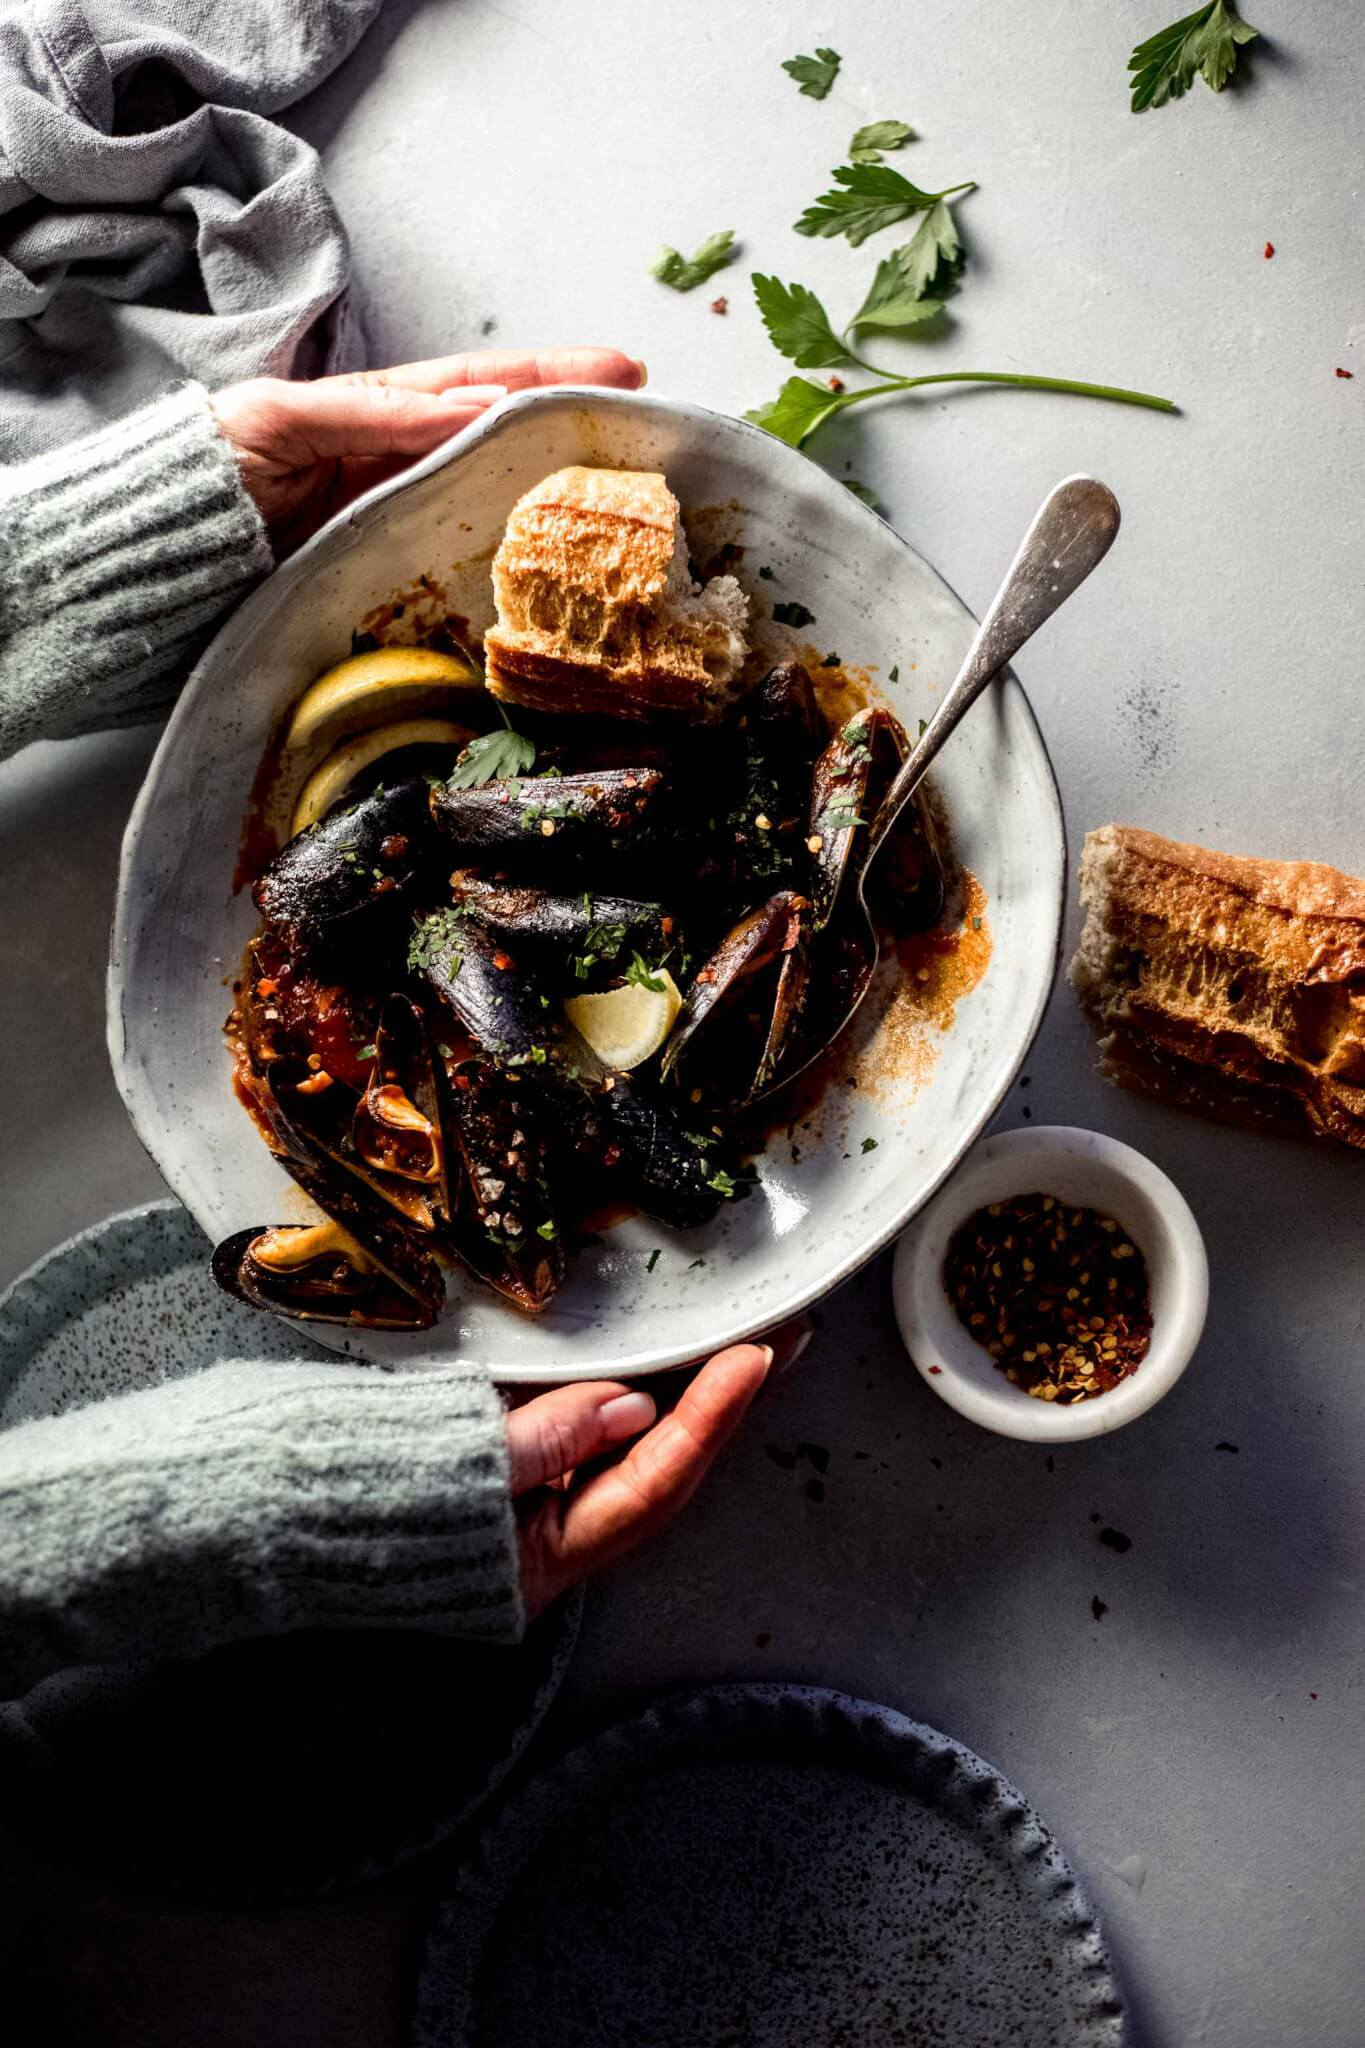 Two hands holding bowl of cooked mussels next to loaf of crusty bread and bowl of red pepper flakes.